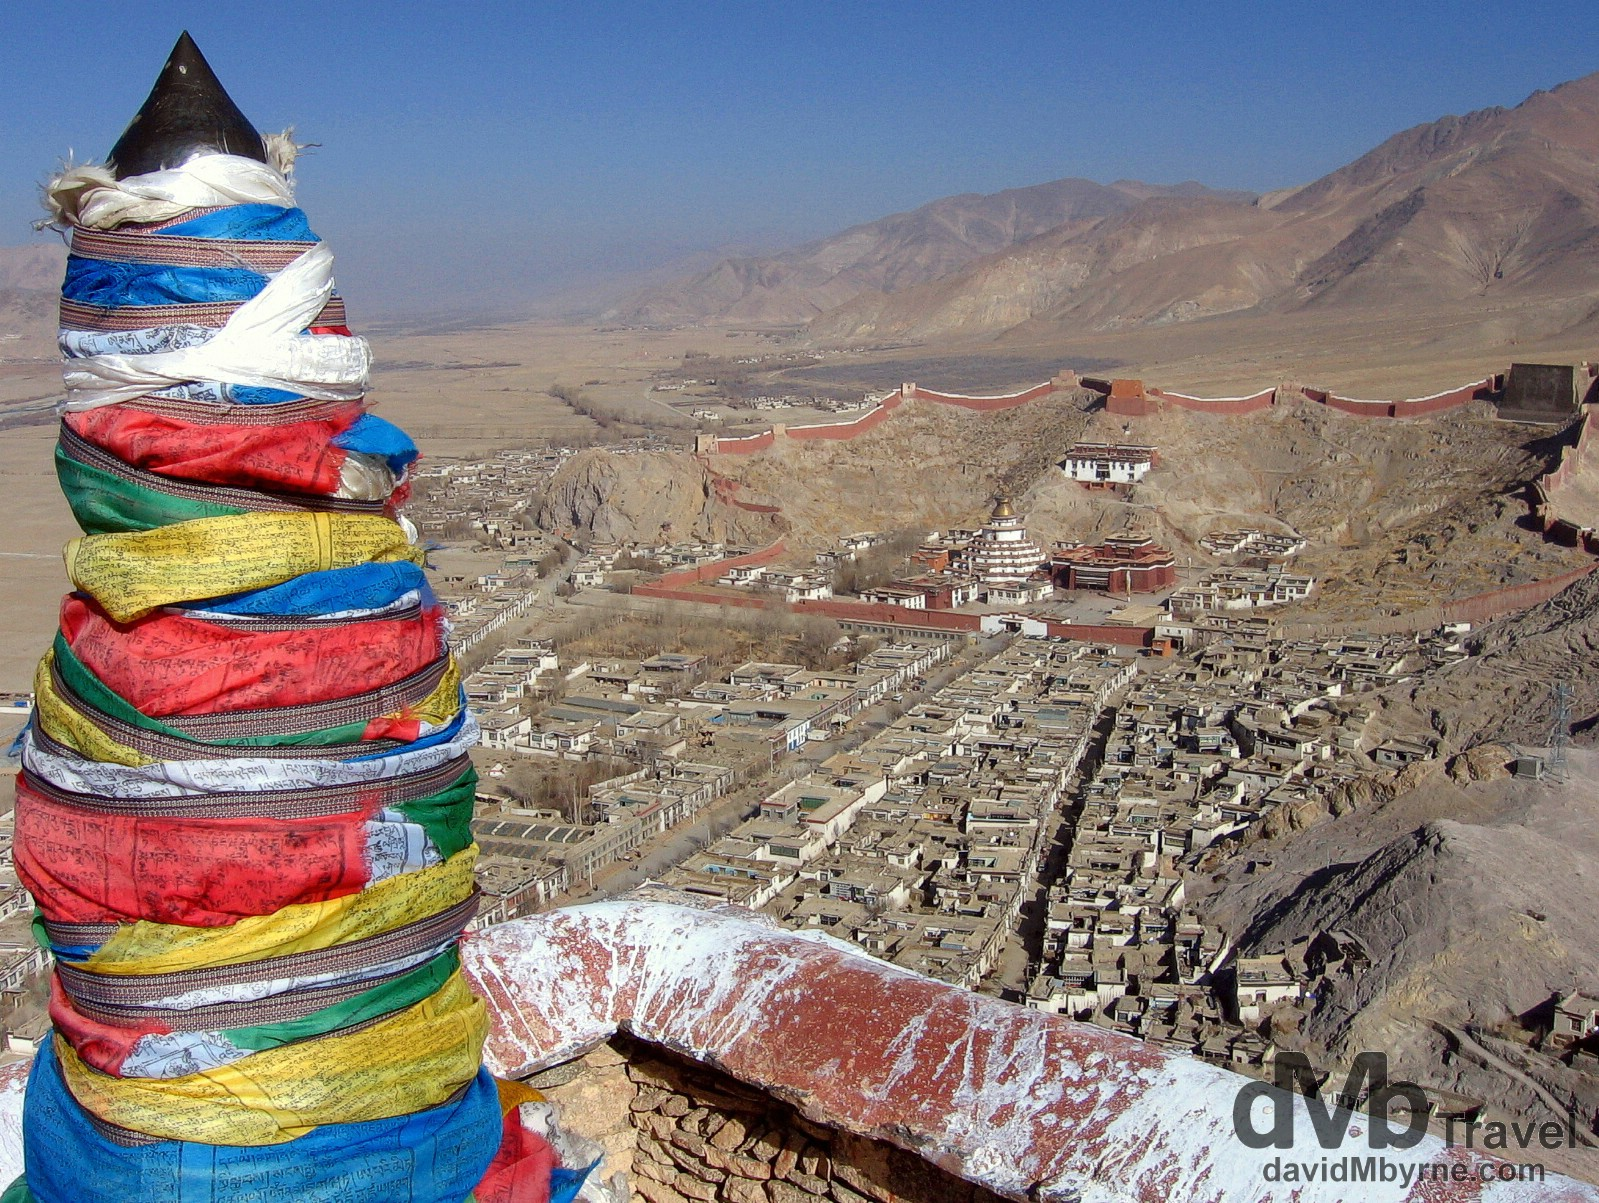 The view from atop Gyantse Old Fort, Gyantse, Tibet